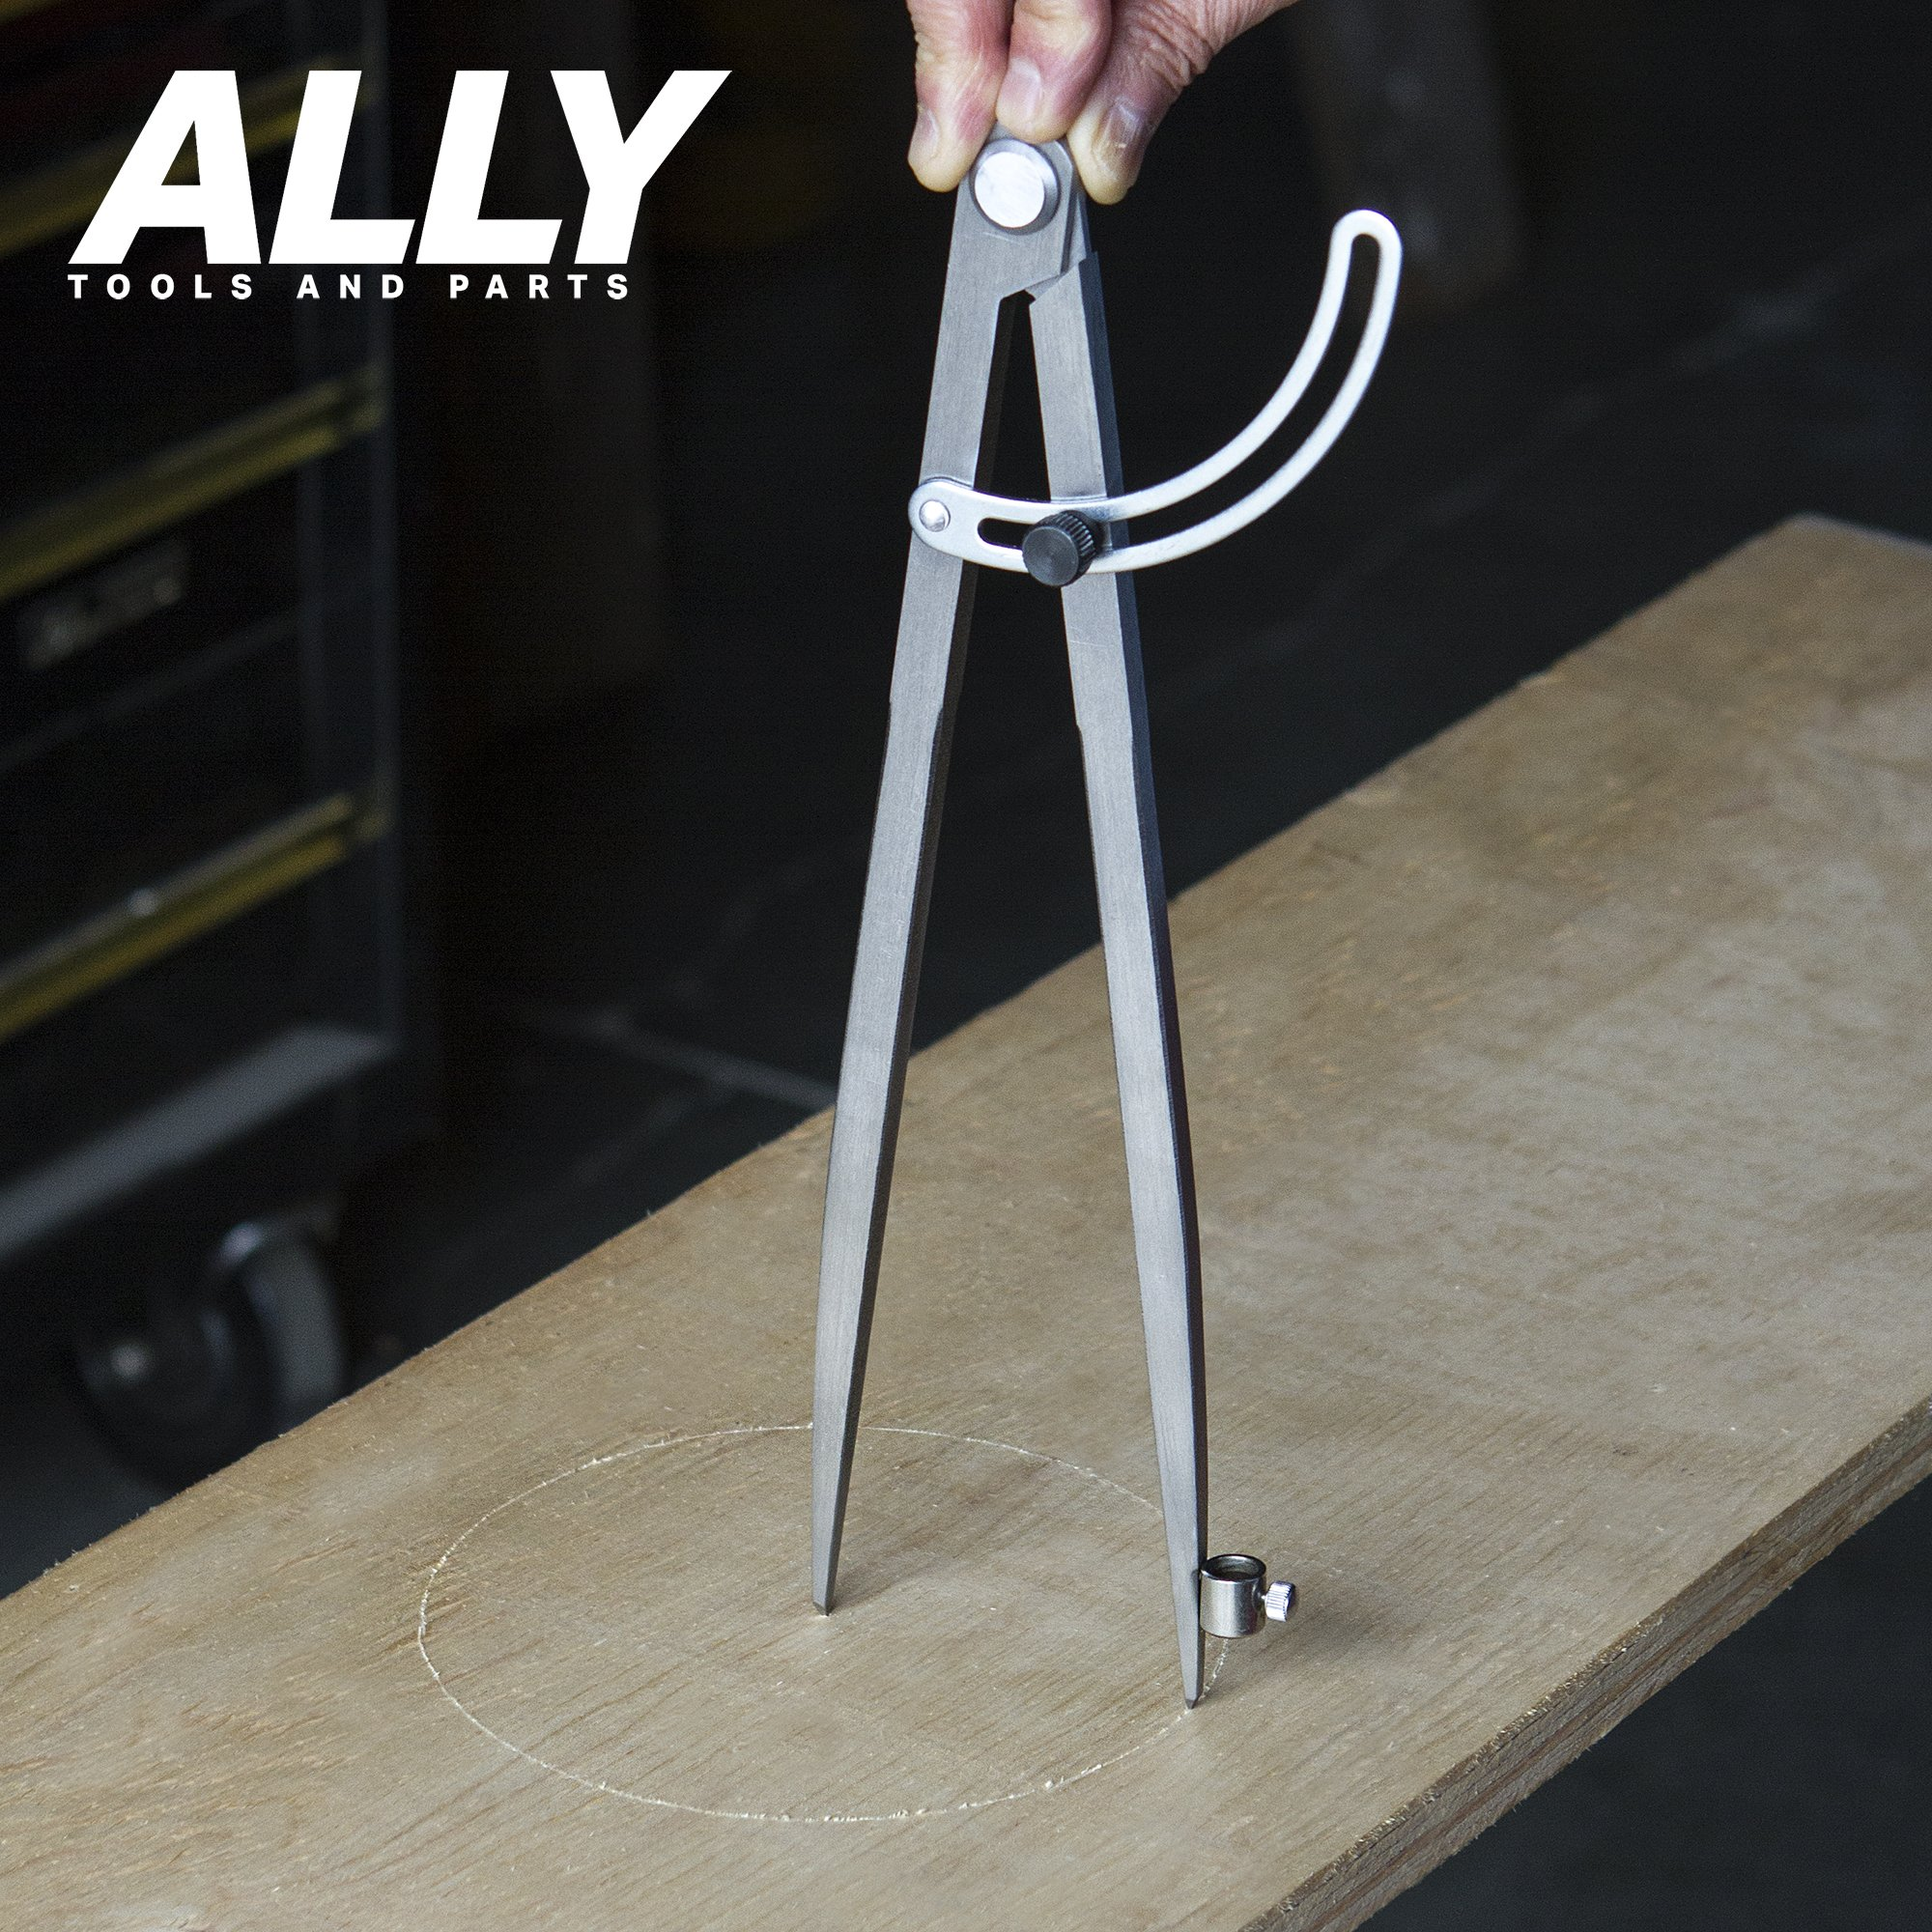 ALLY Tools 12'' Wing Divider Pencil Holder/Compass Scribe Kit INCLUDES Two Pencils and Metal Pencil Sharpener Ideal for Drawing Circles, Scribing Wood, Scribing Metal, Drafting, and Map Plotting by ALLY Tools and Parts (Image #5)